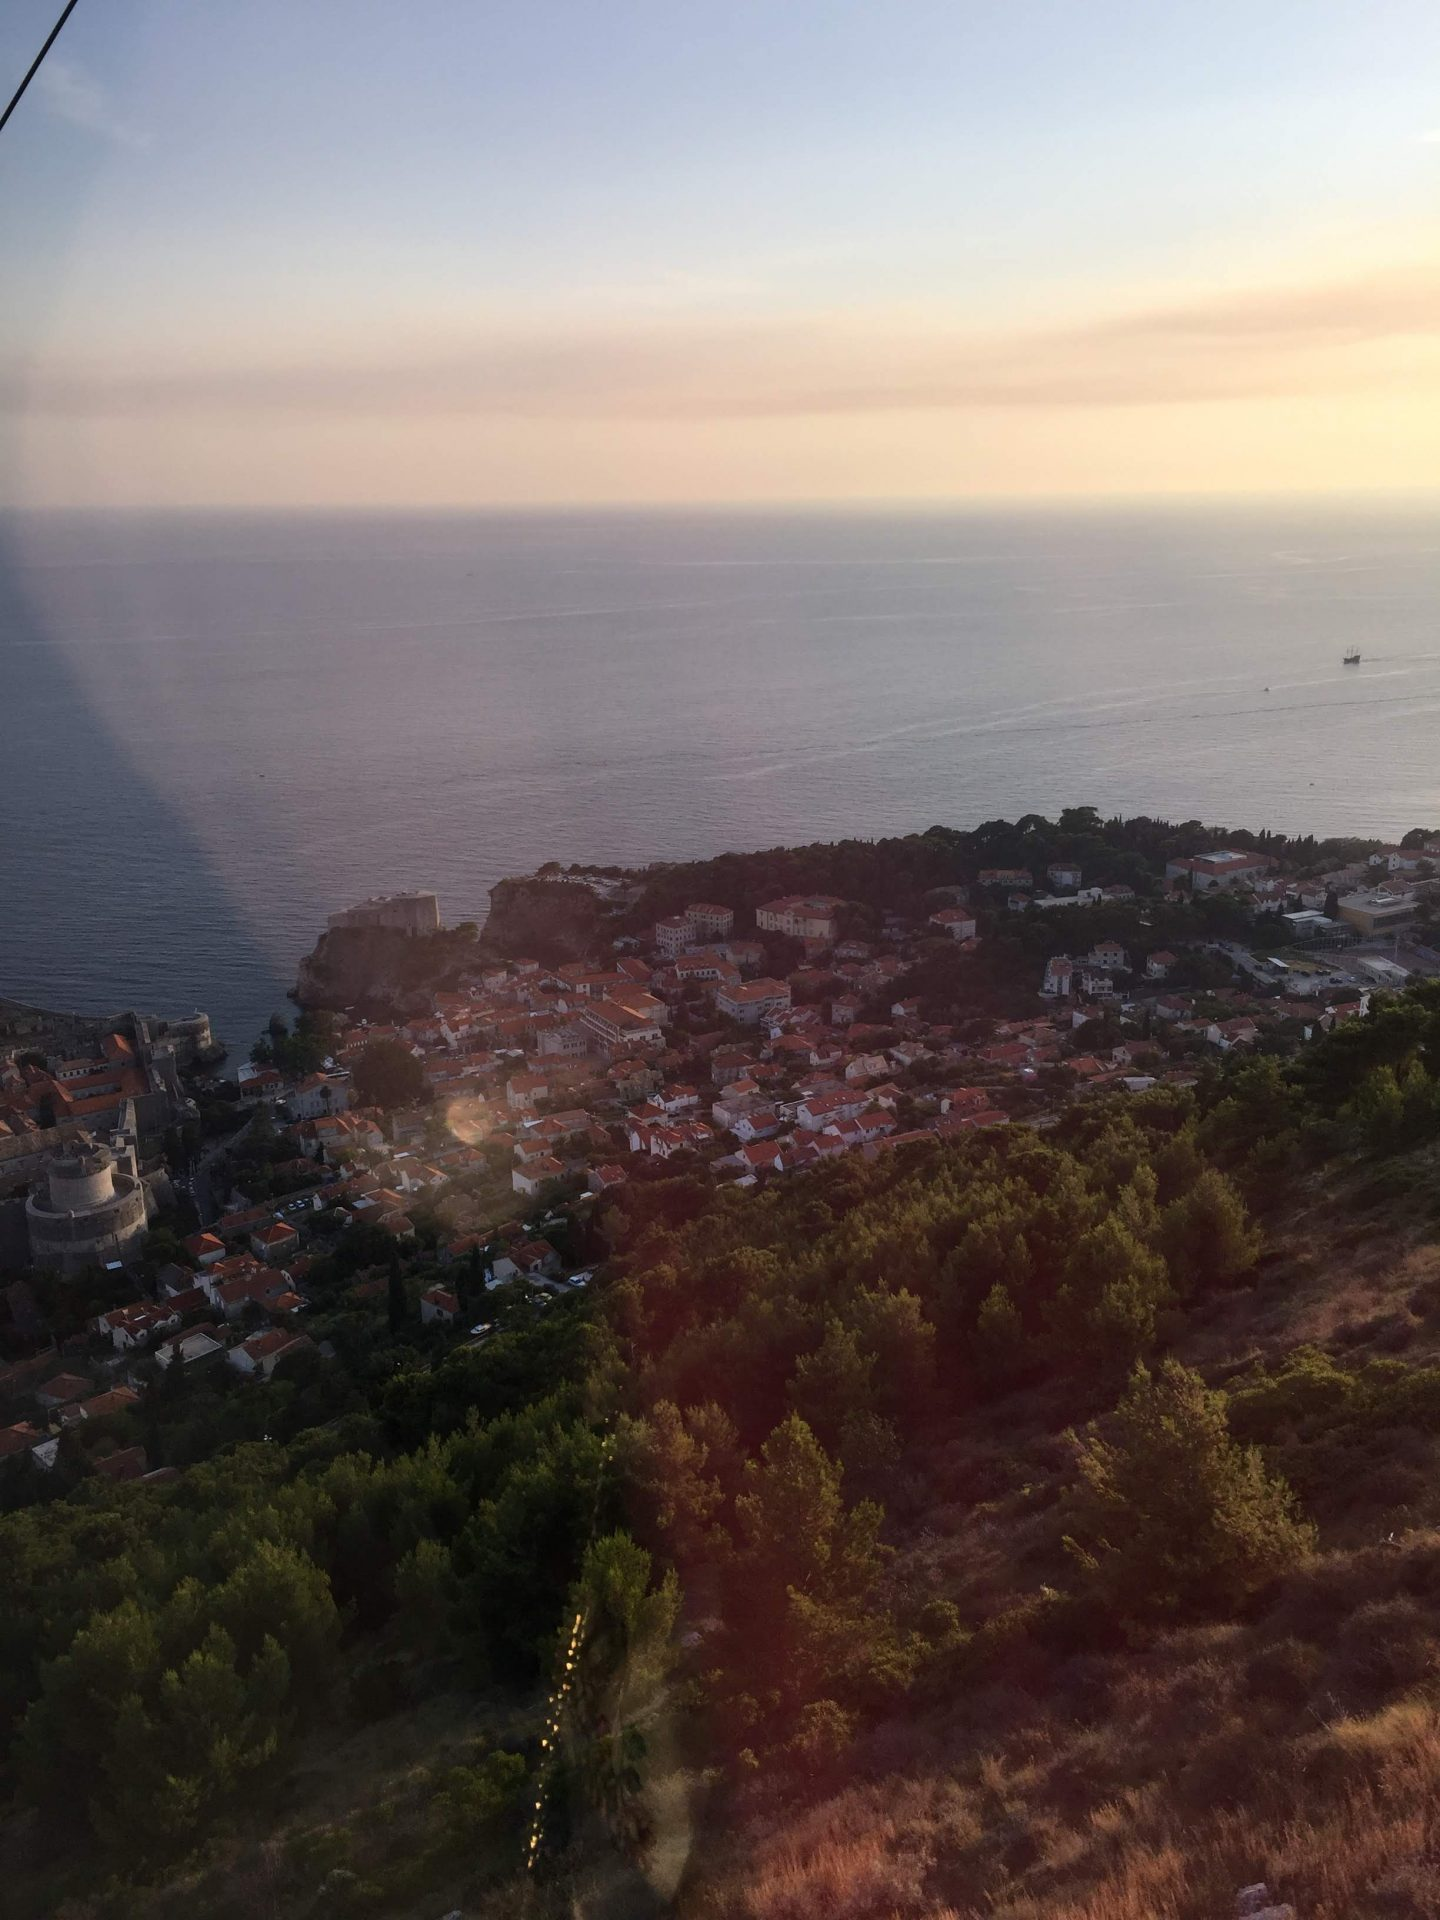 Sunset over the Croatian city from the Dubrovnik Cable Car